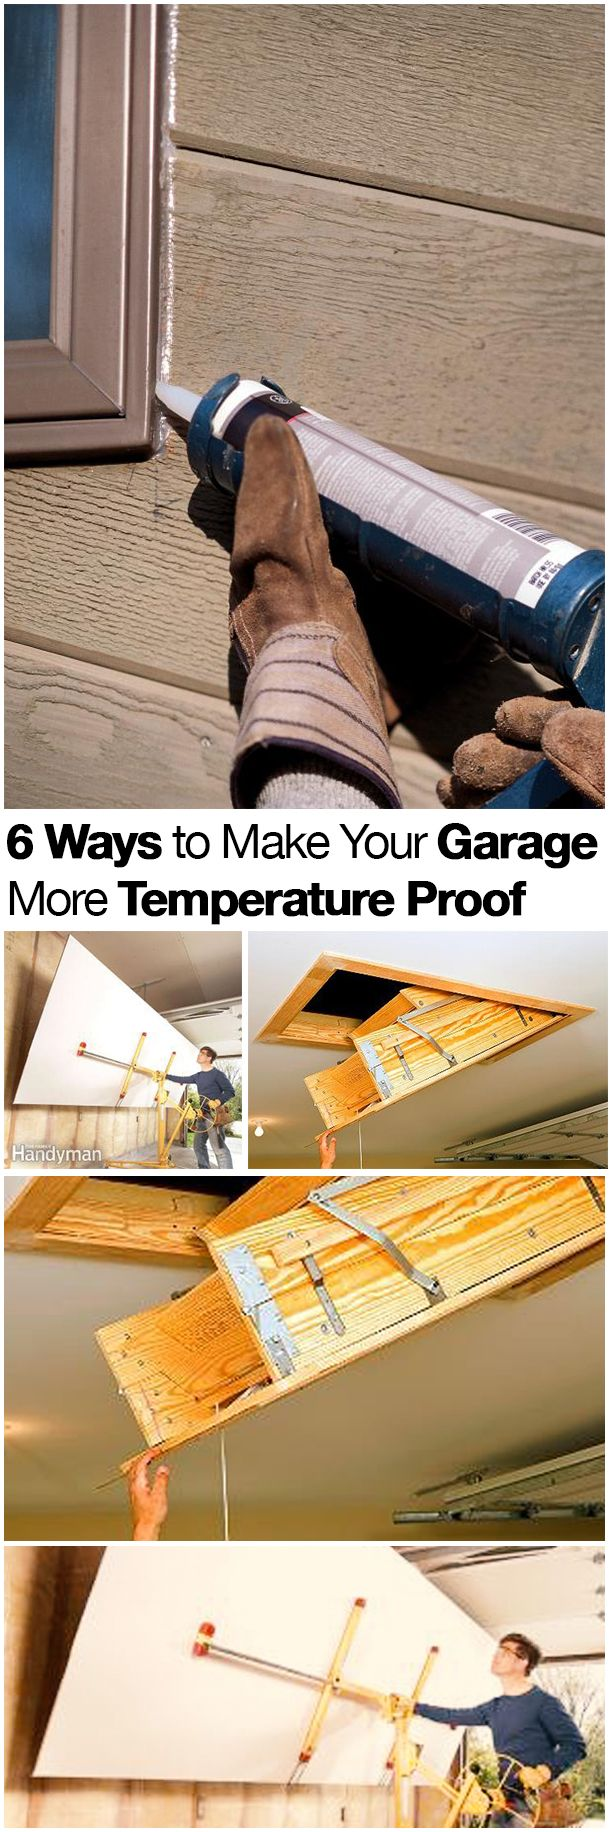 6 Ways To Make Your Garage More Temperature Proof Shop